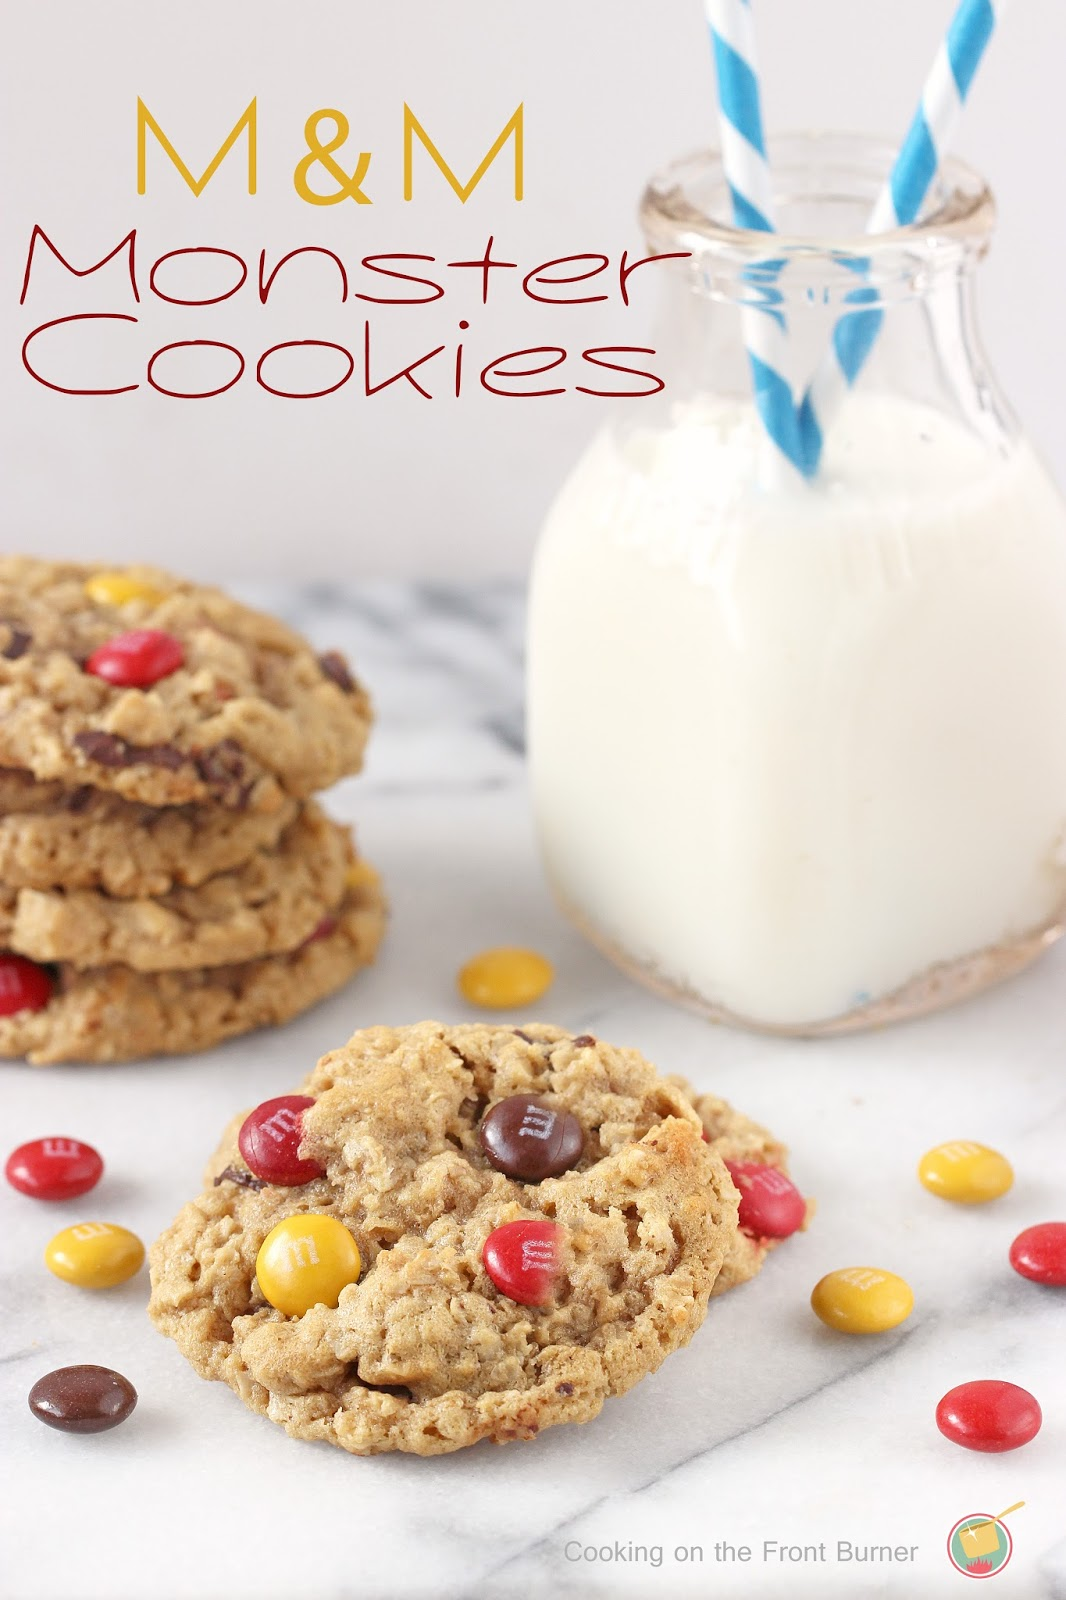 M&M Monster Cookies | Cooking on the Front Burner